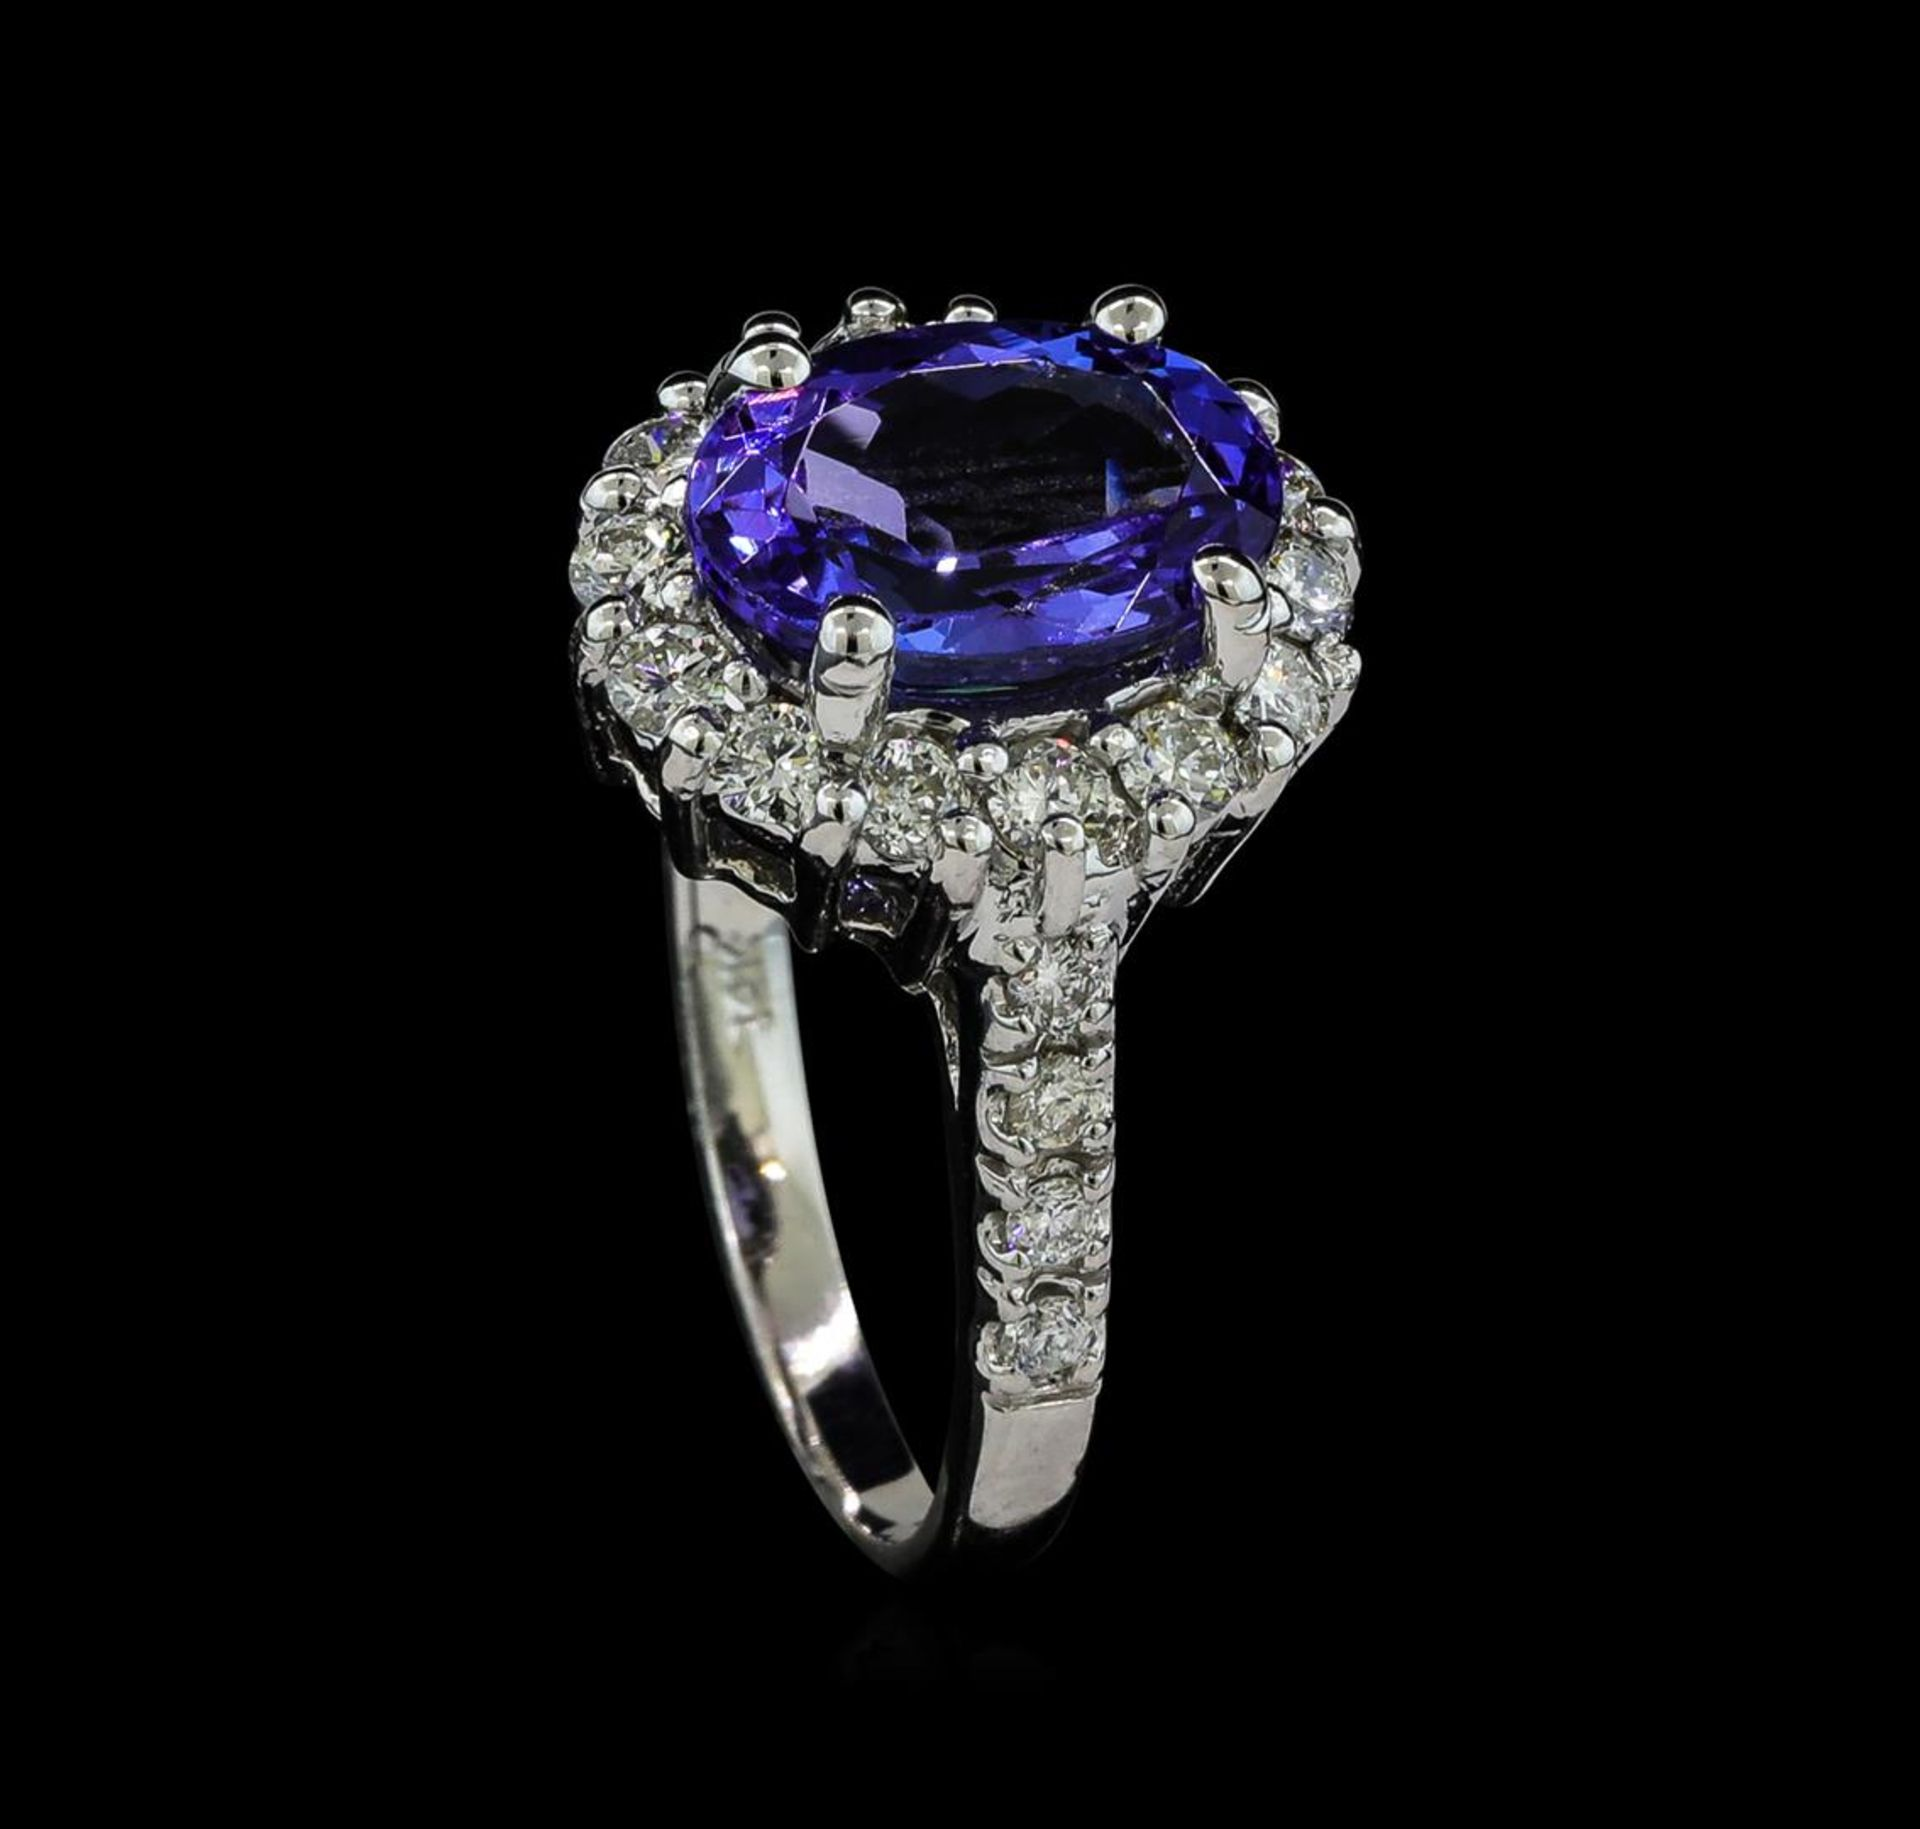 3.06 ctw Tanzanite and Diamond Ring - 14KT White Gold - Image 4 of 5